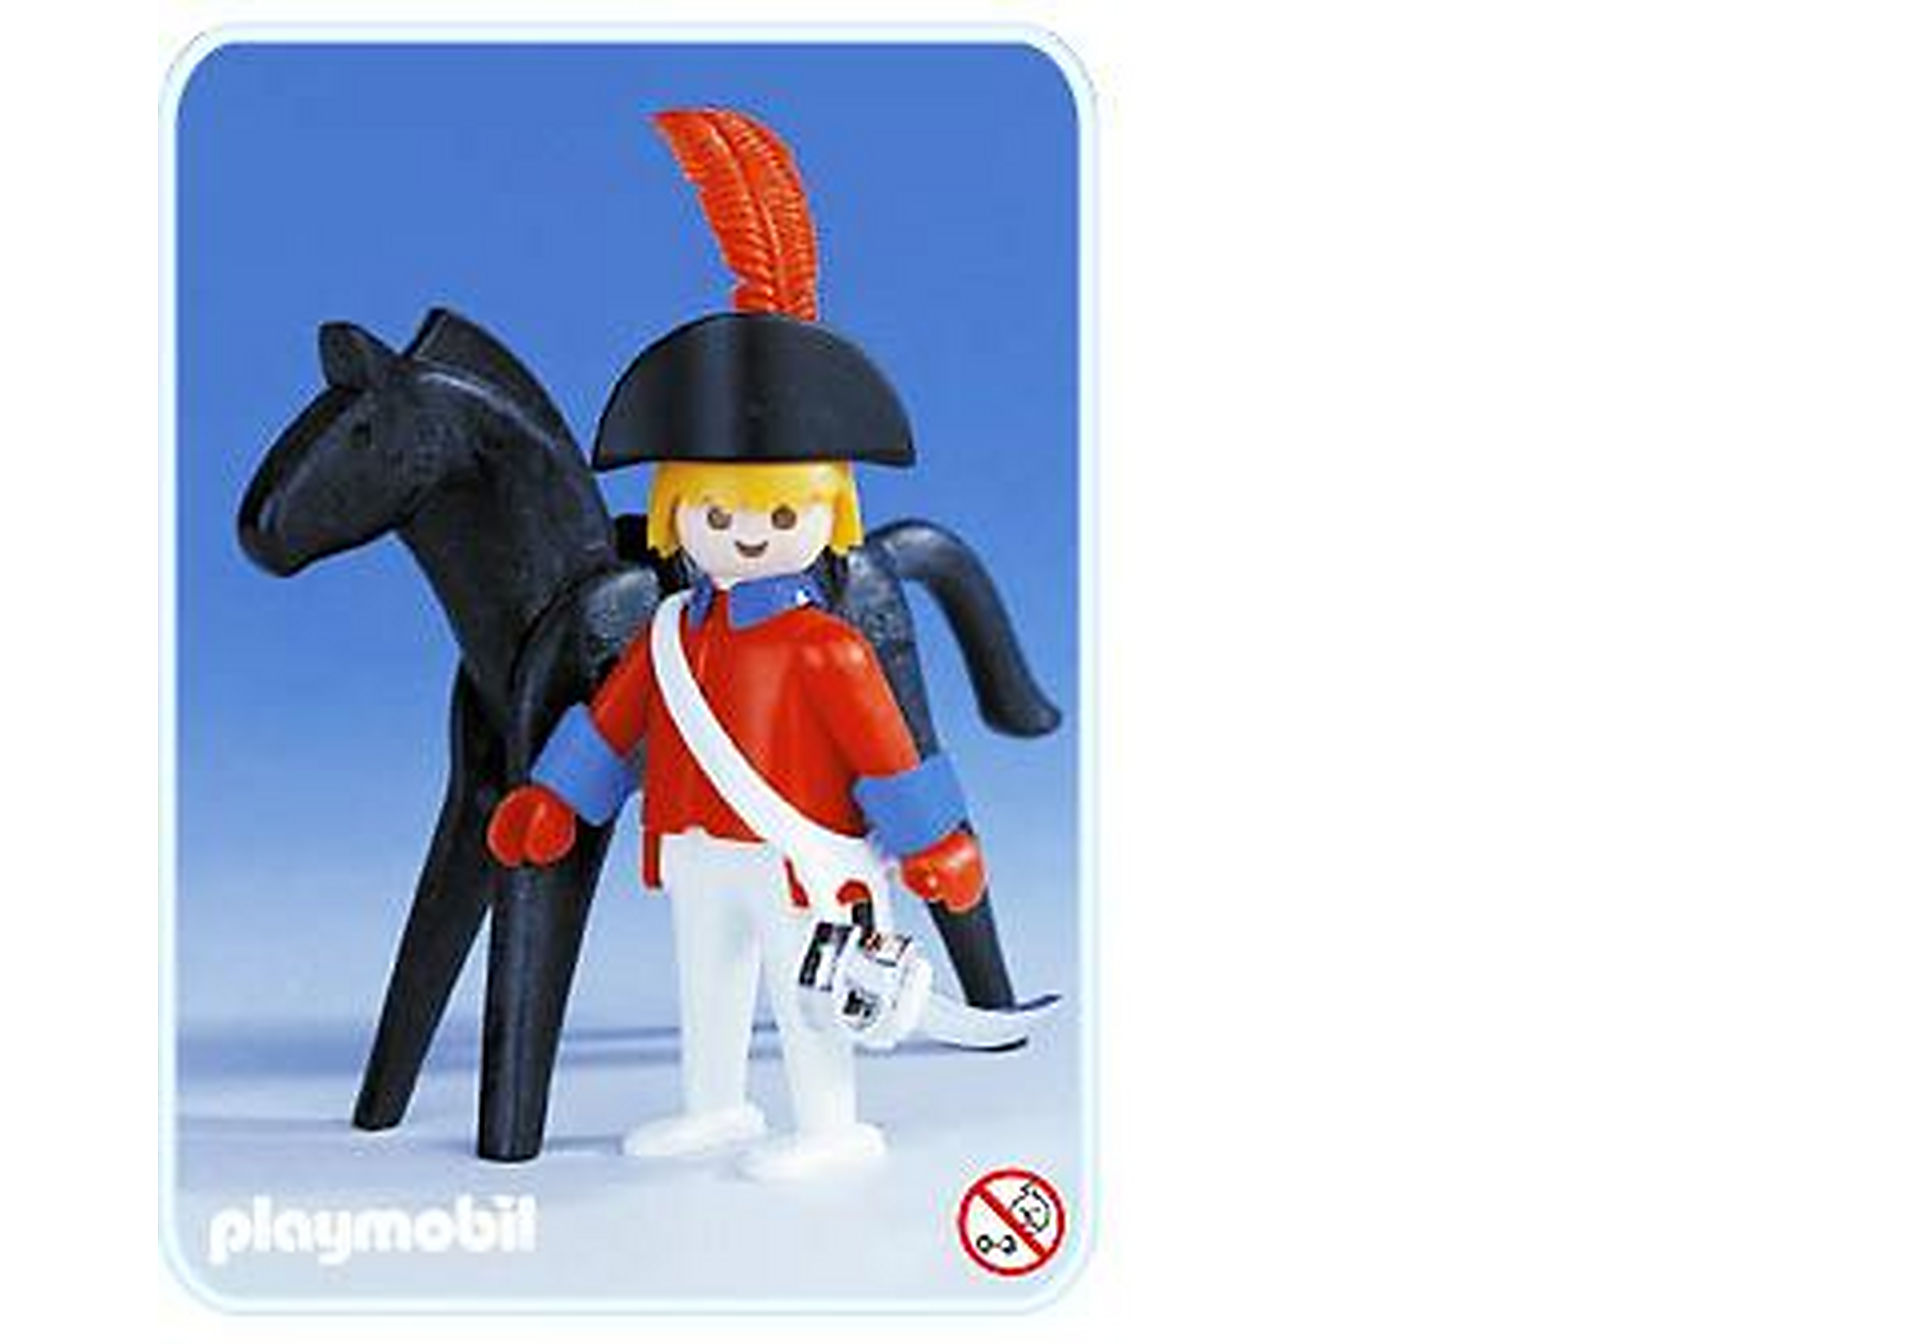 http://media.playmobil.com/i/playmobil/3387-A_product_detail/Garde-Offizier/Pferd